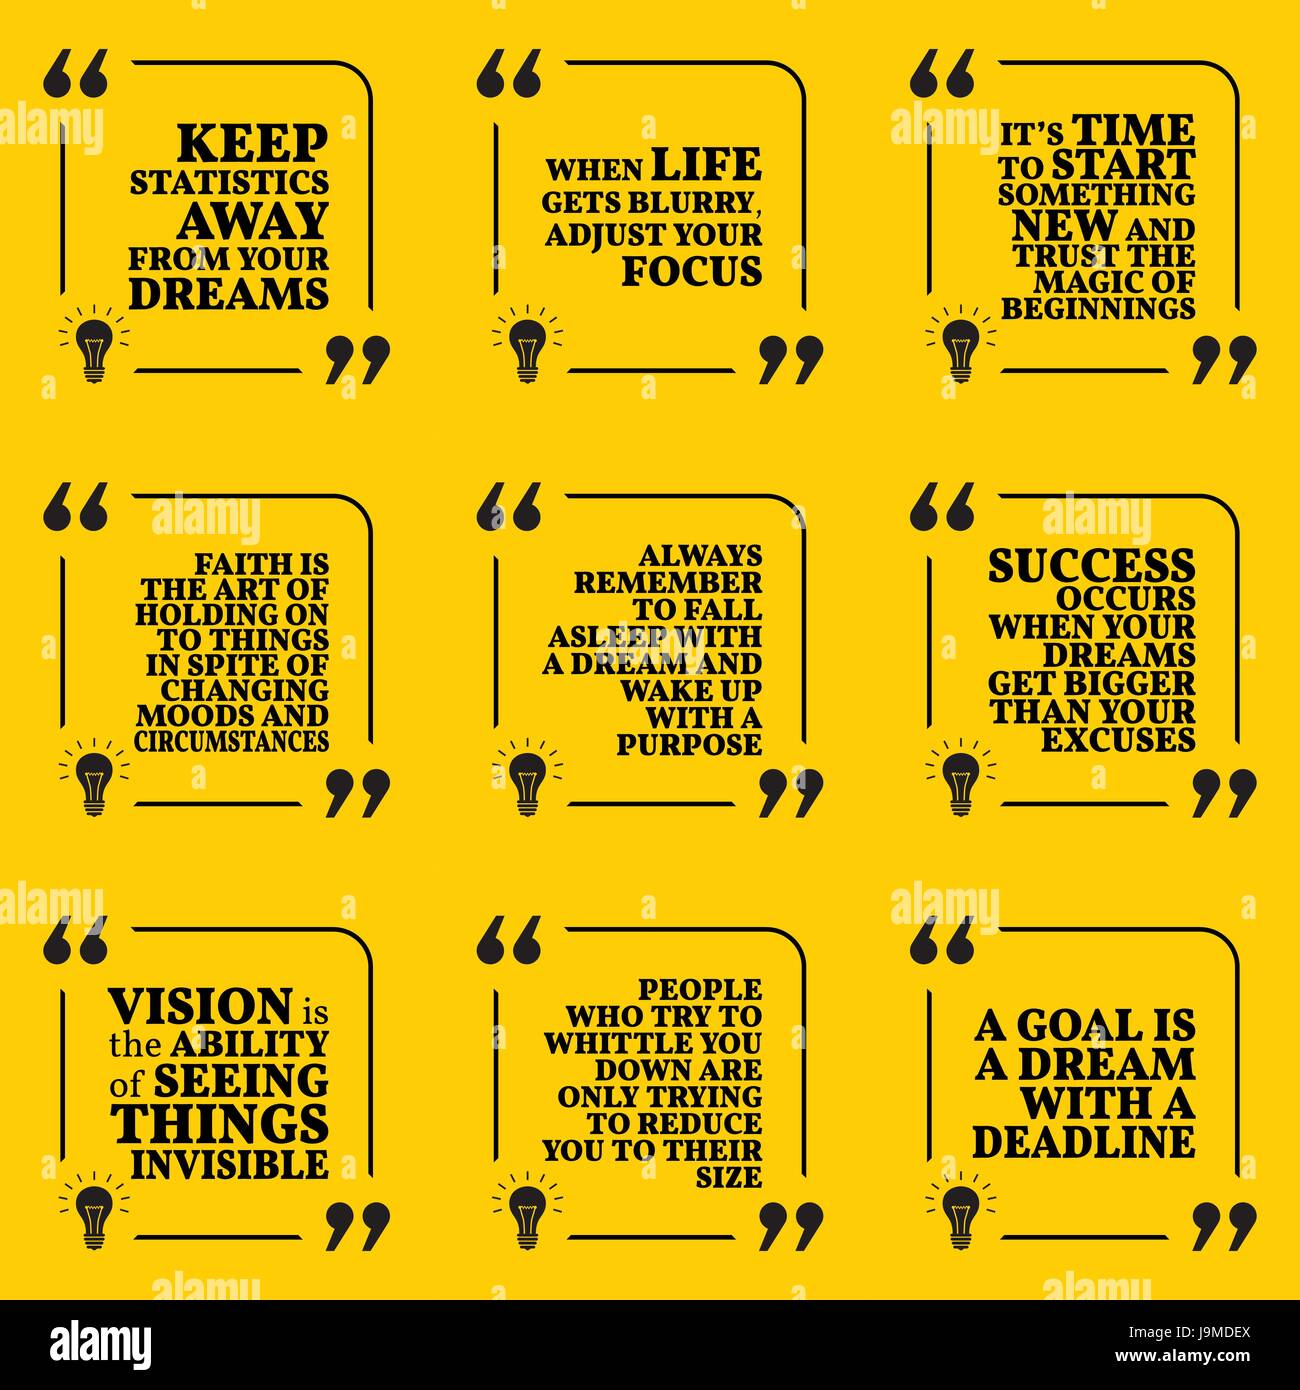 Set Of Motivational Quotes About Statistics Dreams Focus New Beginner Electronic Circuits Beginning Faith Purpose Success Vision And Deadline Simple Note Design Typography